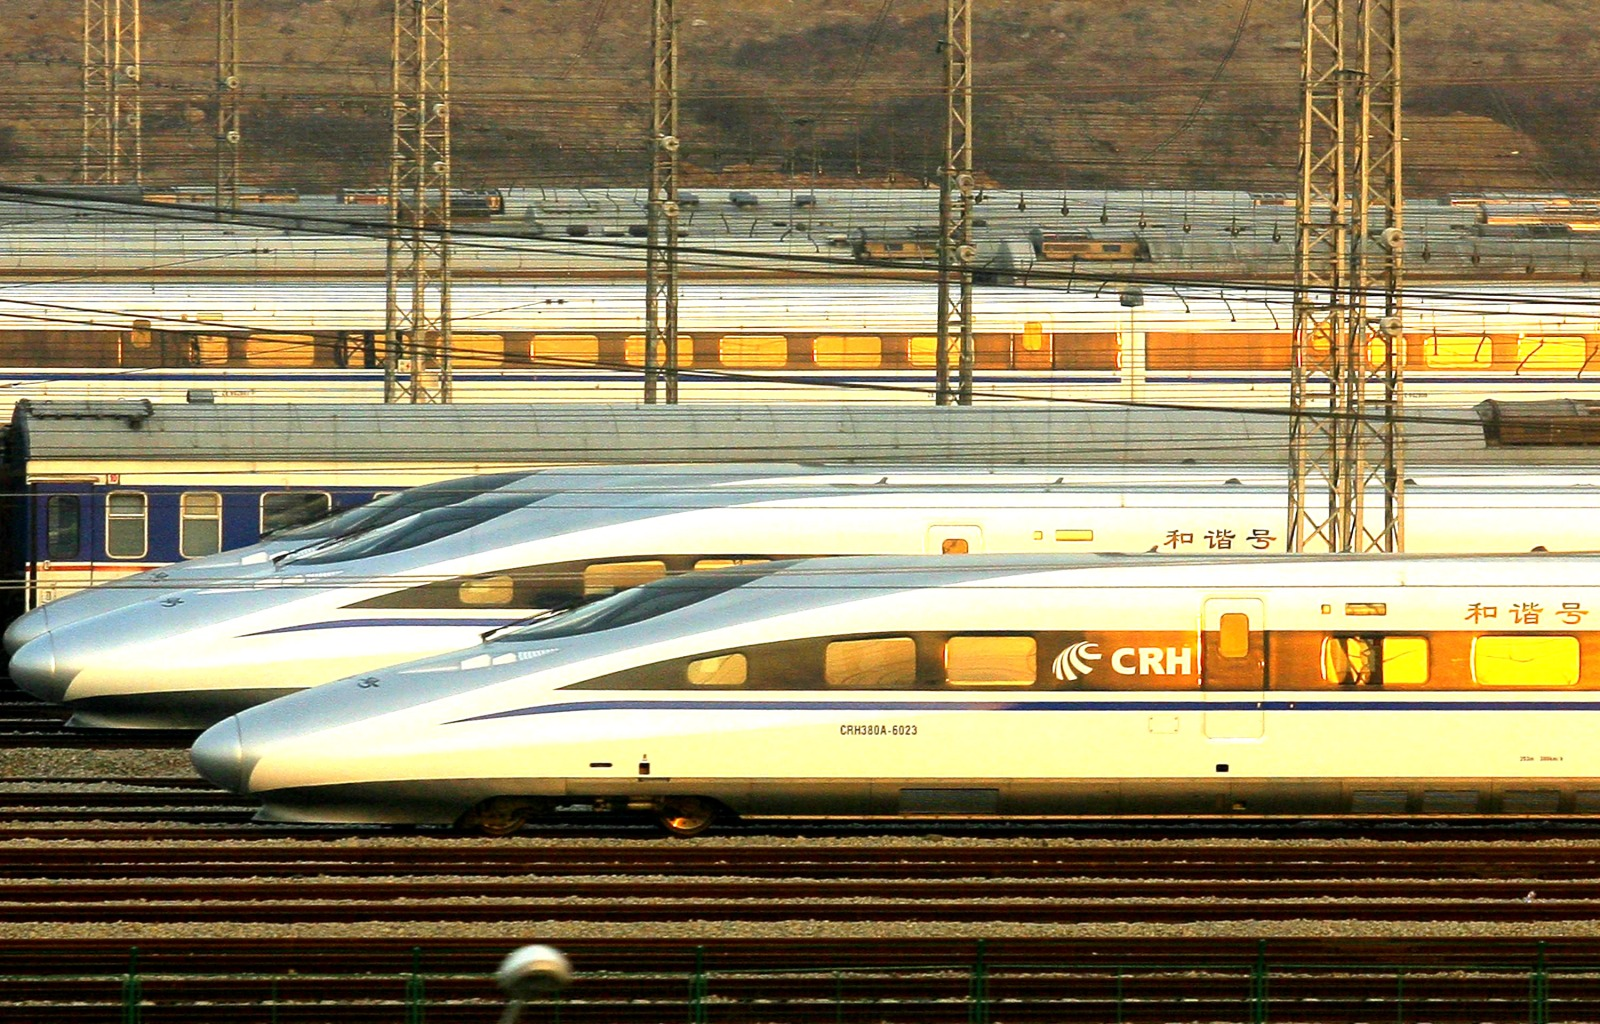 Wuhan: The train from Wuhan to  Guangzhou is the world's fastest intercity train, reaching top speeds of 217  miles per hour. Above, CRH380A high-speed trains are seen near the Wuhan Railway Station on Jan. 15, 2011. Chinese officials have invested billions of dollars in broadening and modernizing the country's rail network to keep pace with growing demand. Last year's 40-day spring festival travel rush attracted some 230 million new passengers.